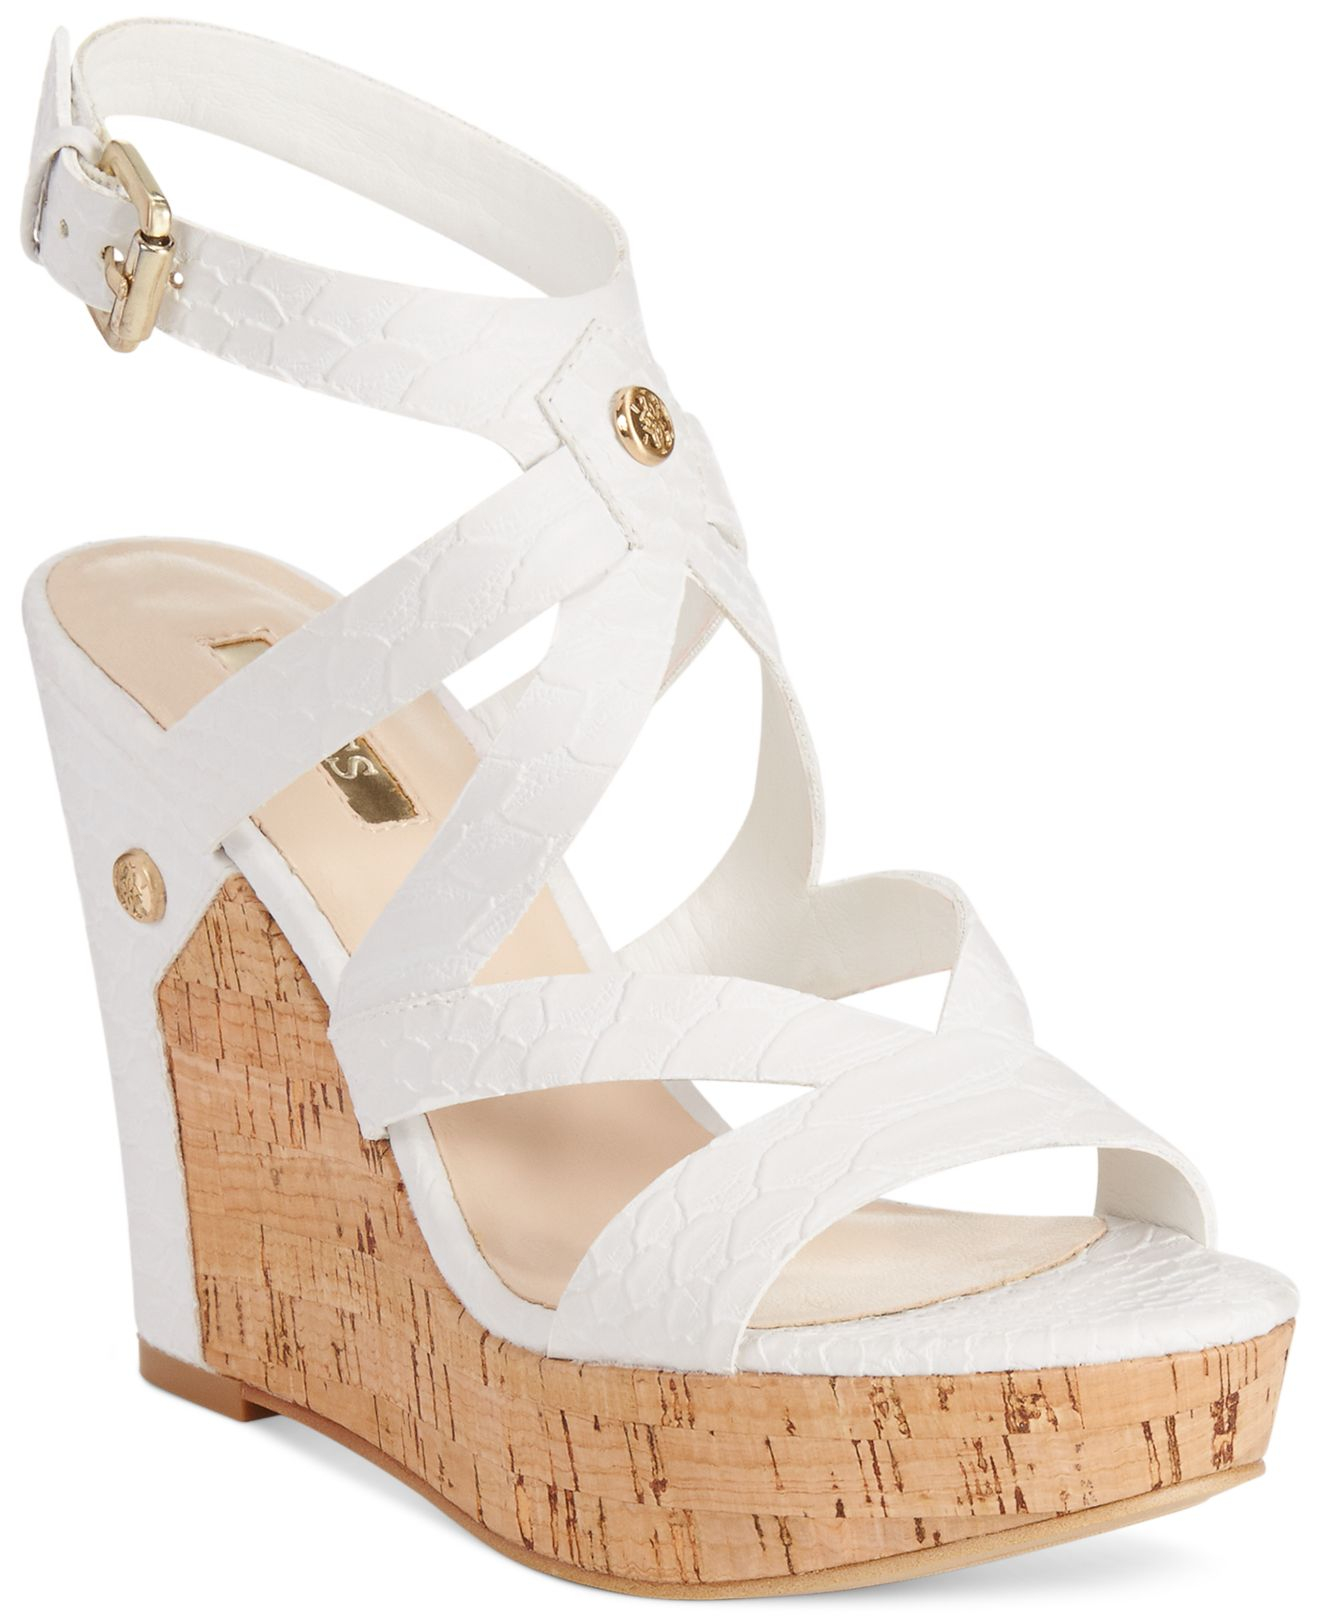 4a2666b446 Guess Women'S Harlee Cork Platform Wedge Sandals in White - Lyst